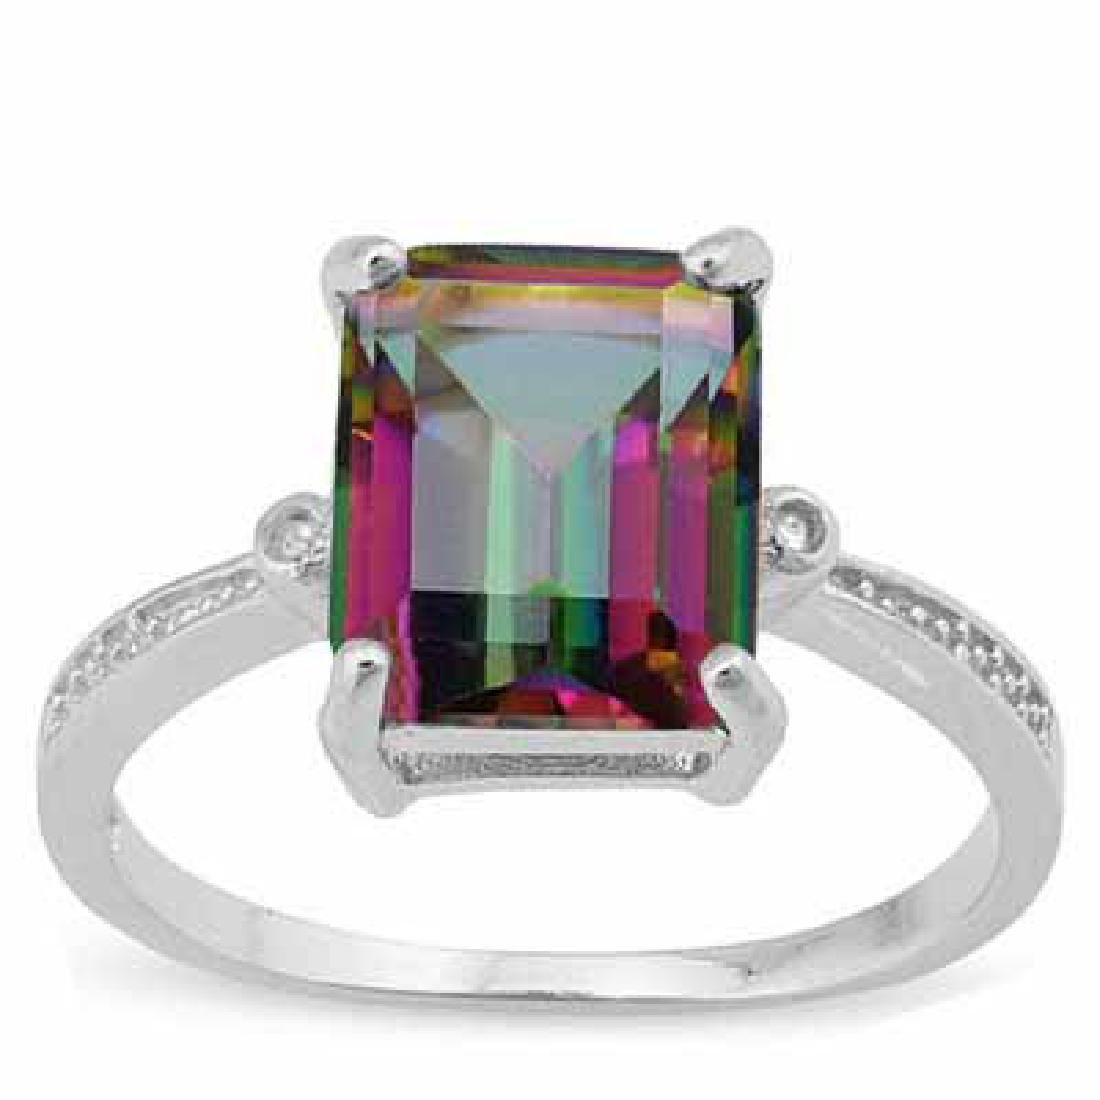 3 CARAT MYSTIC GEMSTONE & DIAMOND 925 STERLING SILVER R